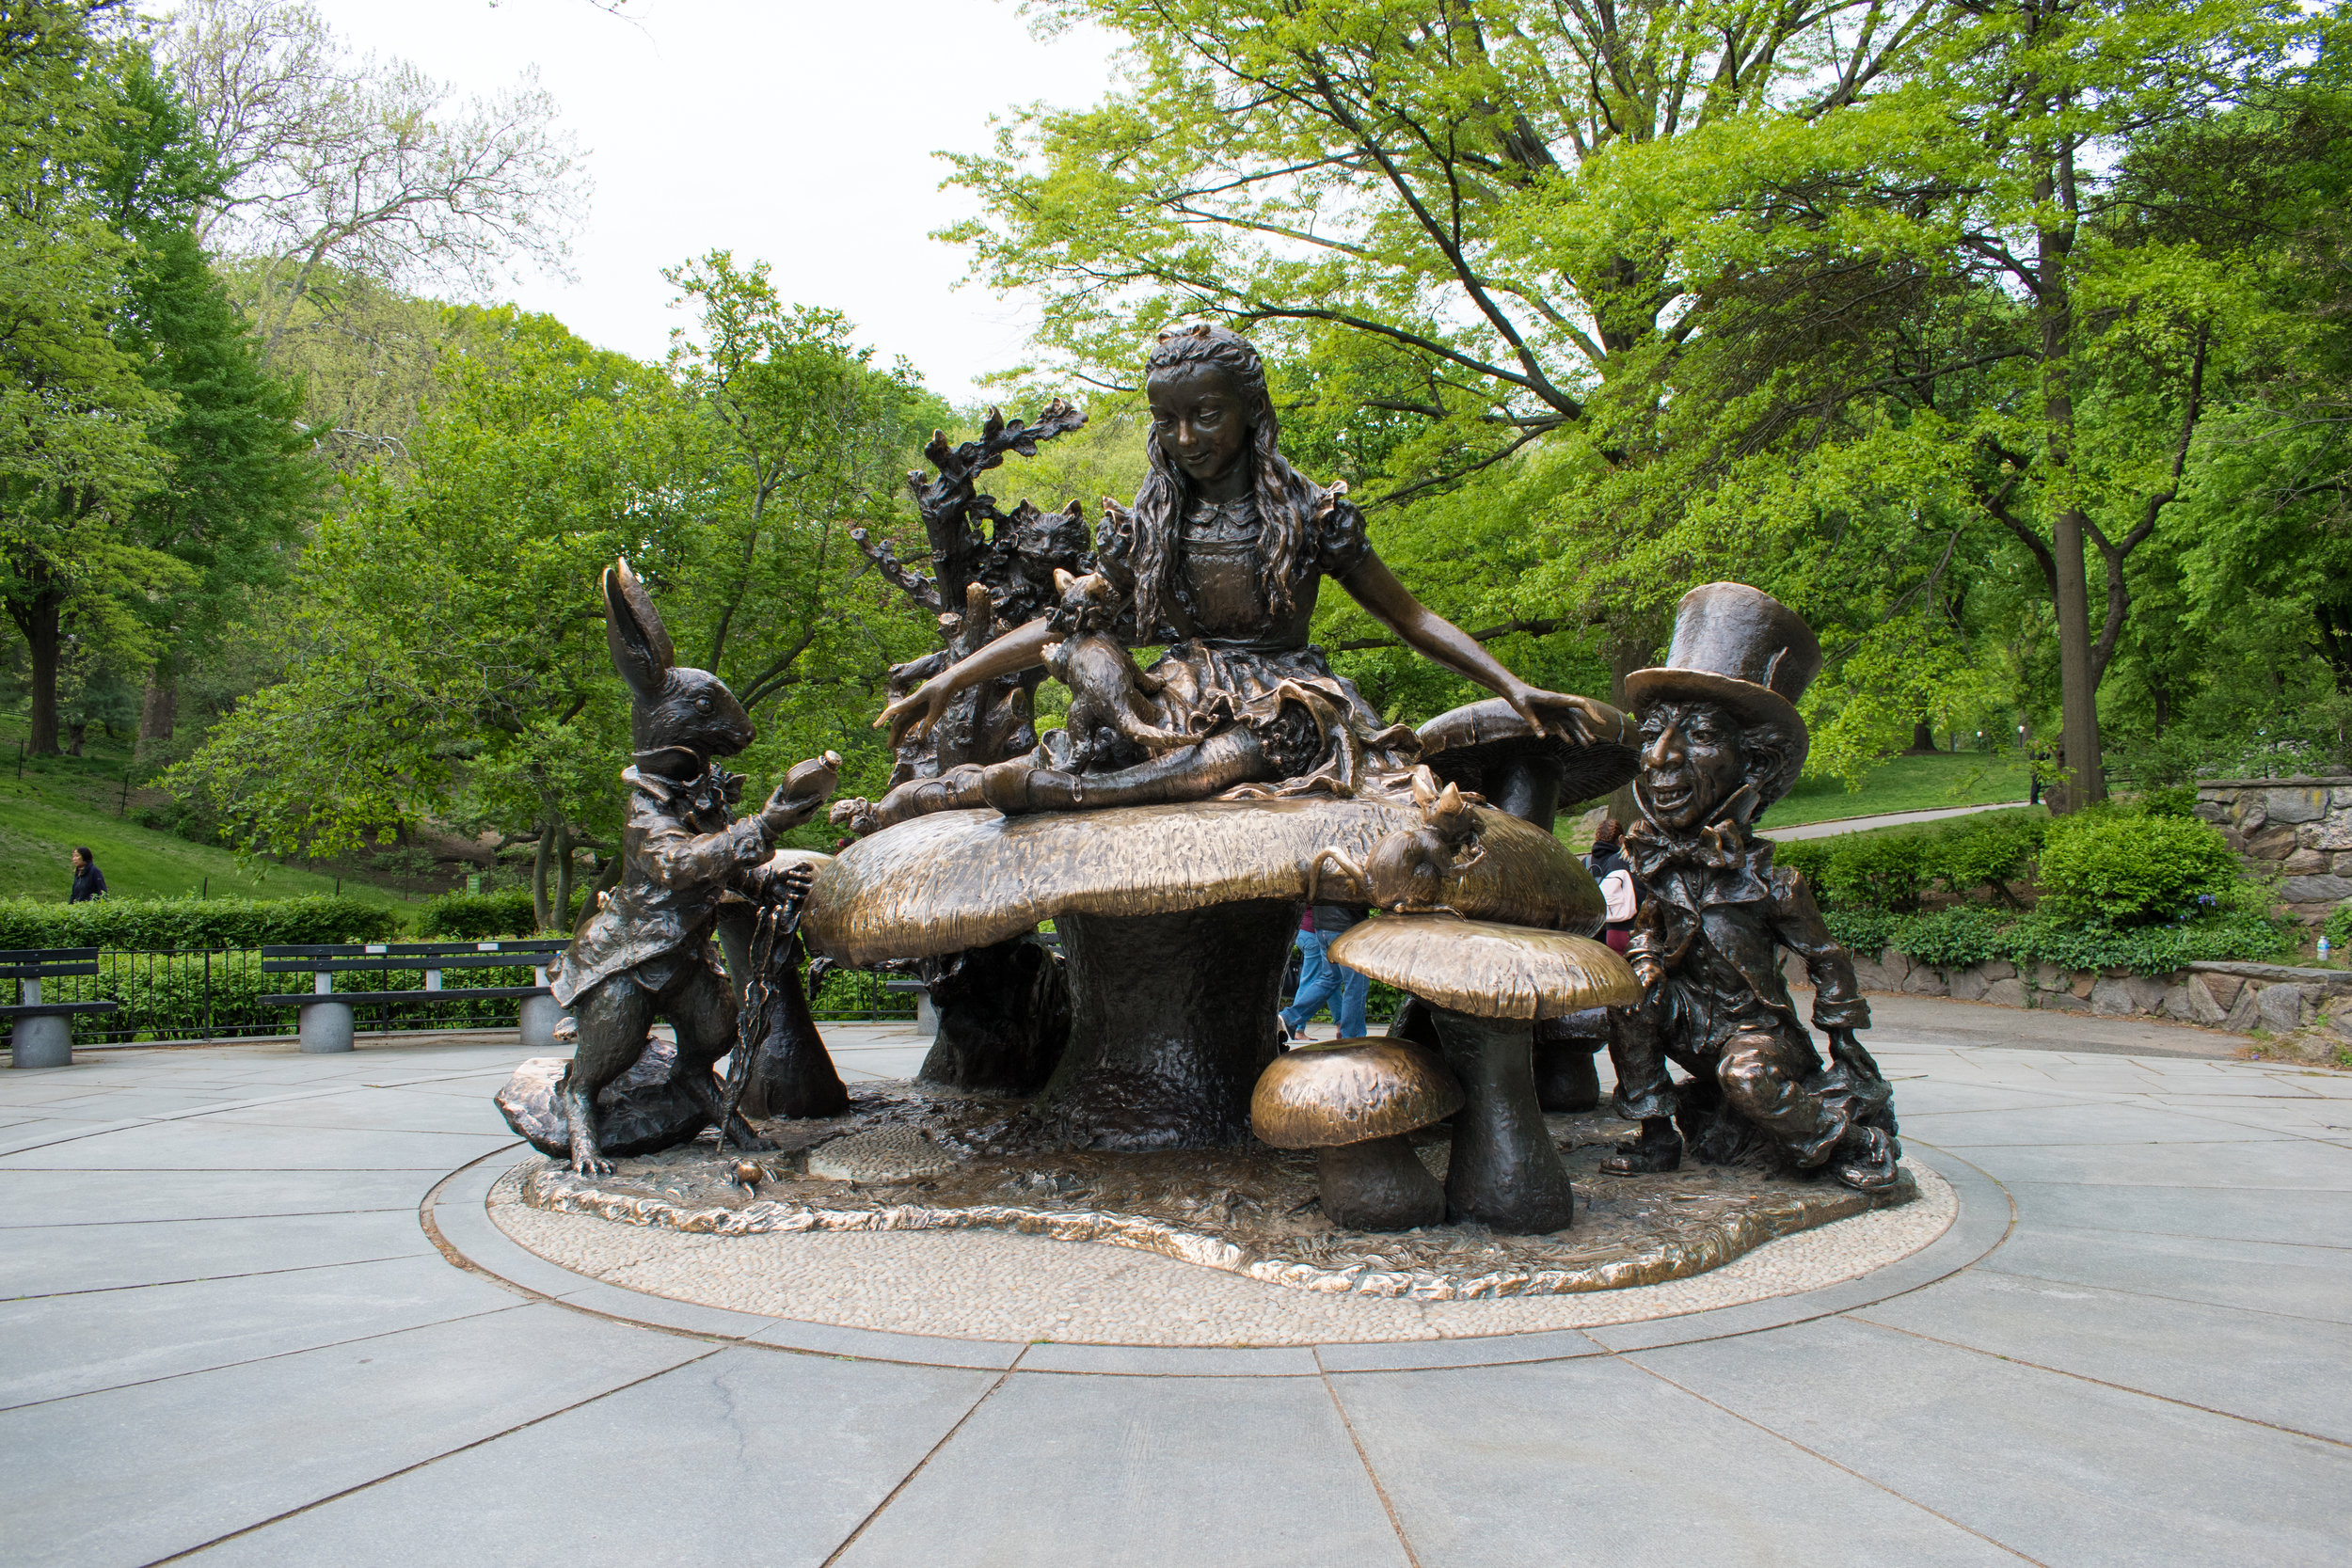 The Alice in Wonderland Statuein Central Park, New York